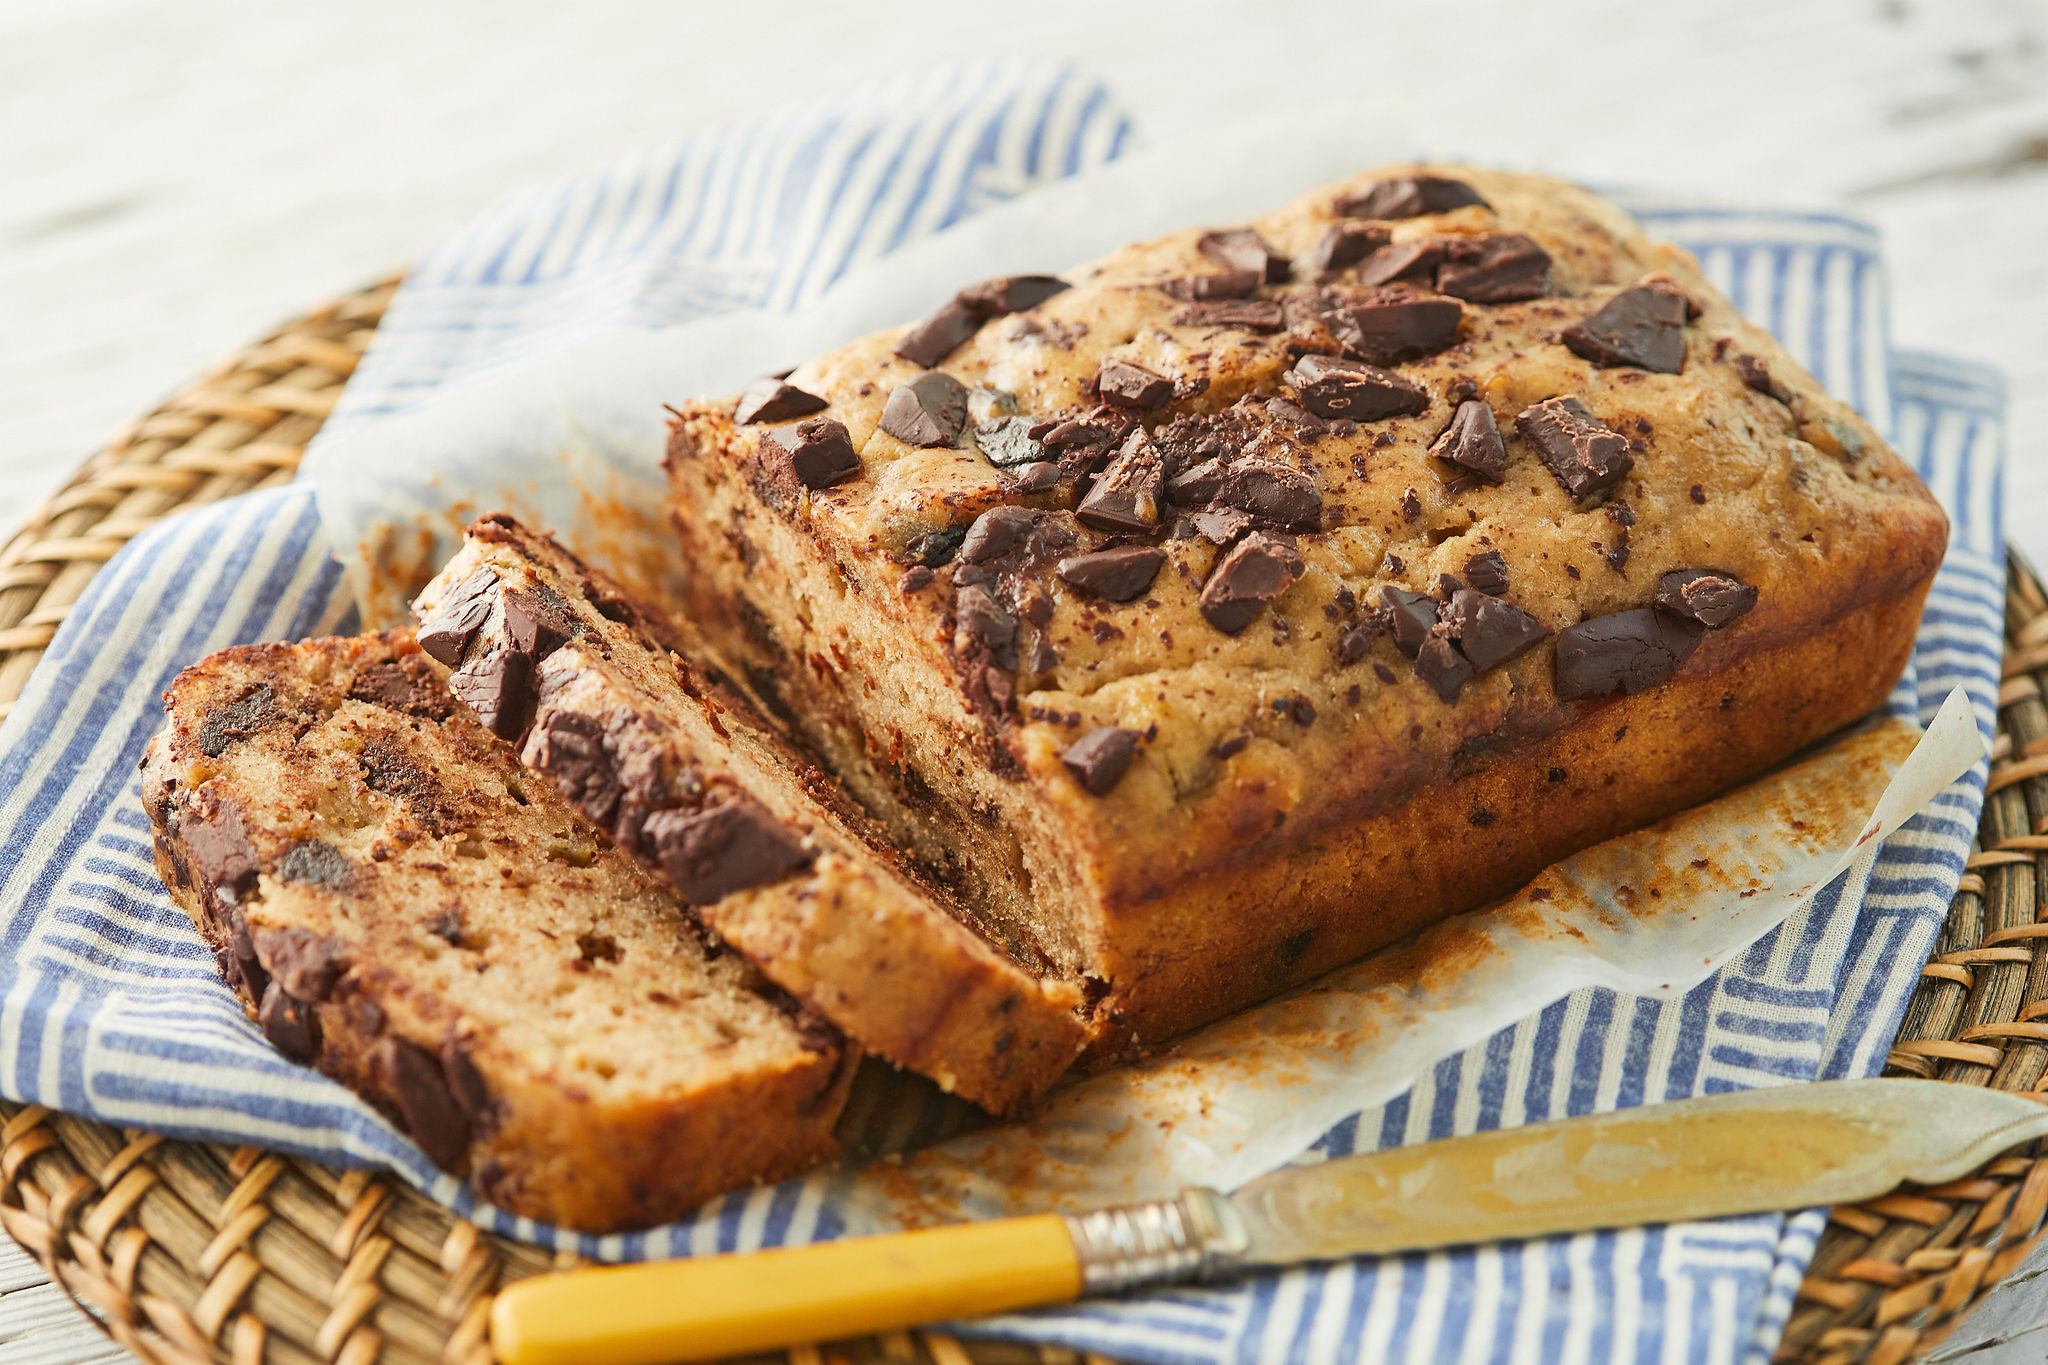 Sliced chocolate chip banana bread, that you can make in the microwave.